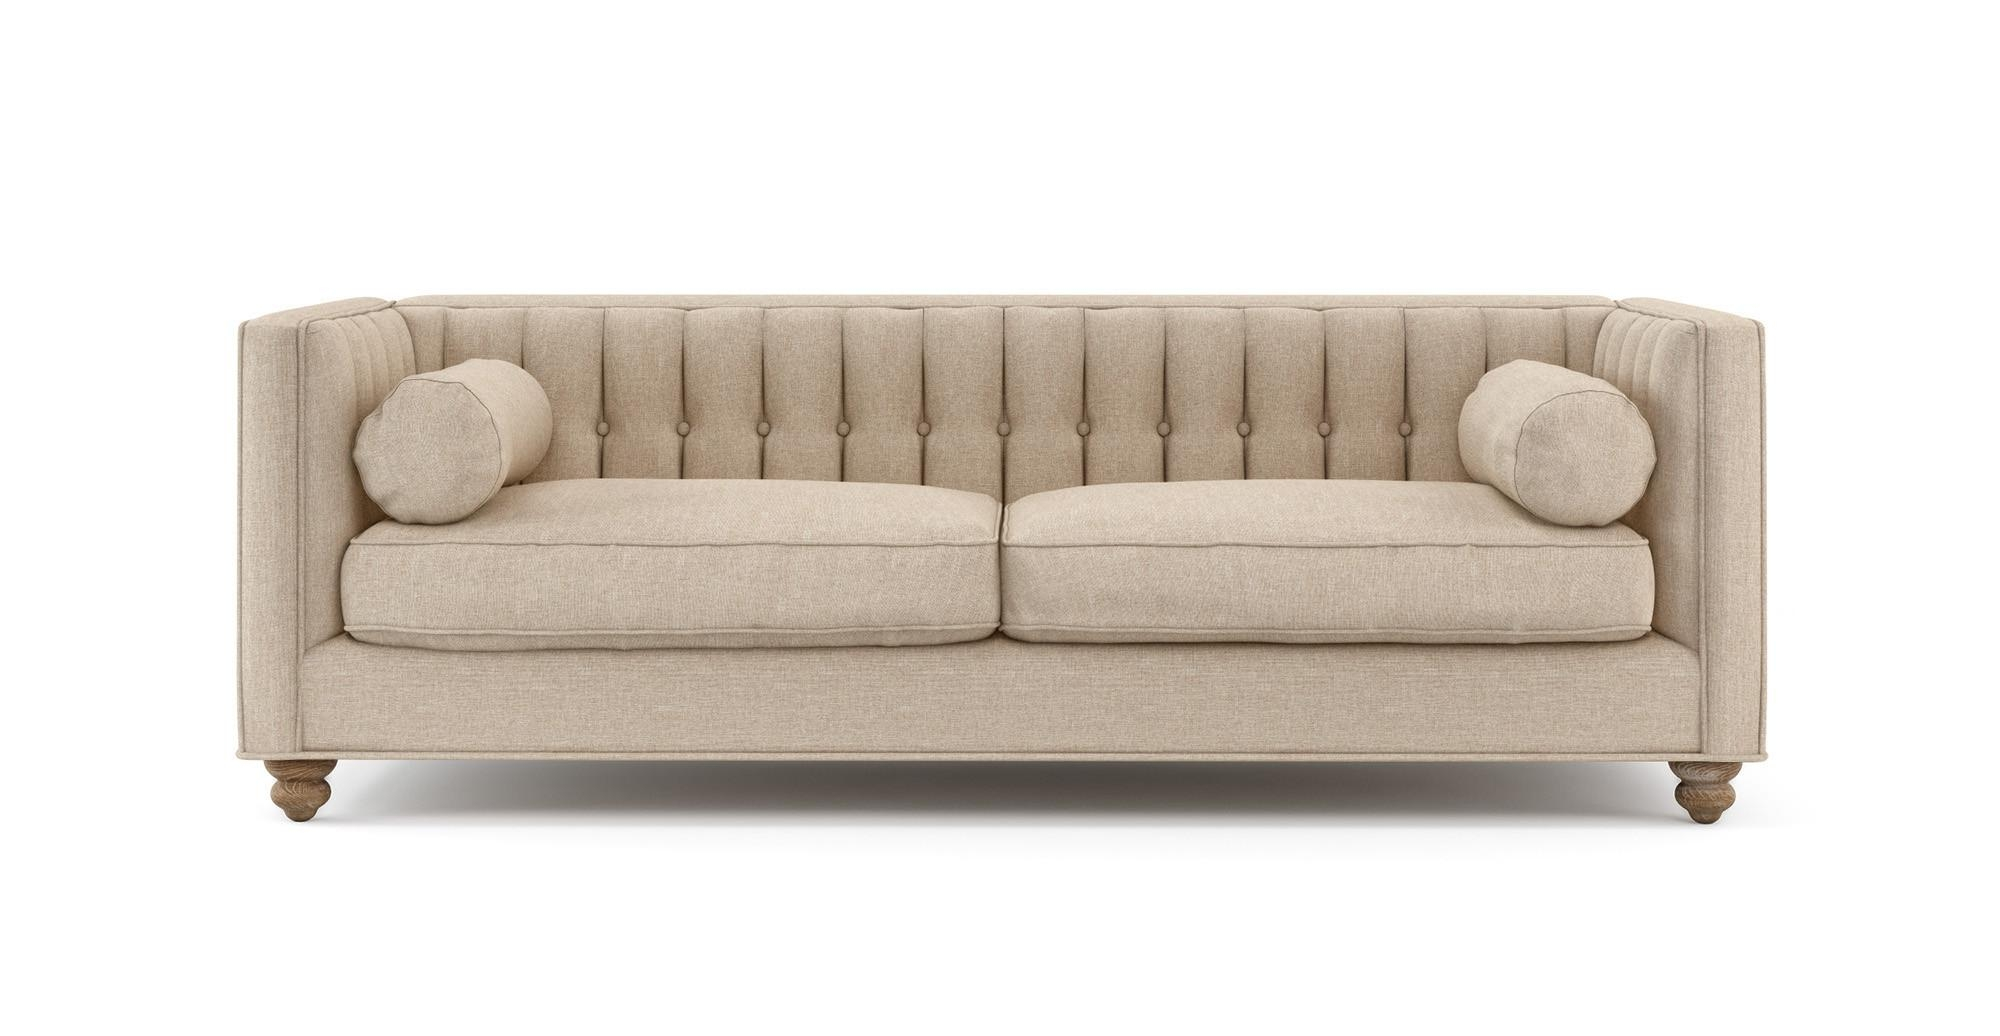 Three Seater Sofa 15 With Three Seater Sofa | Jinanhongyu Inside 3 Seater Sofas For Sale (Image 18 of 21)